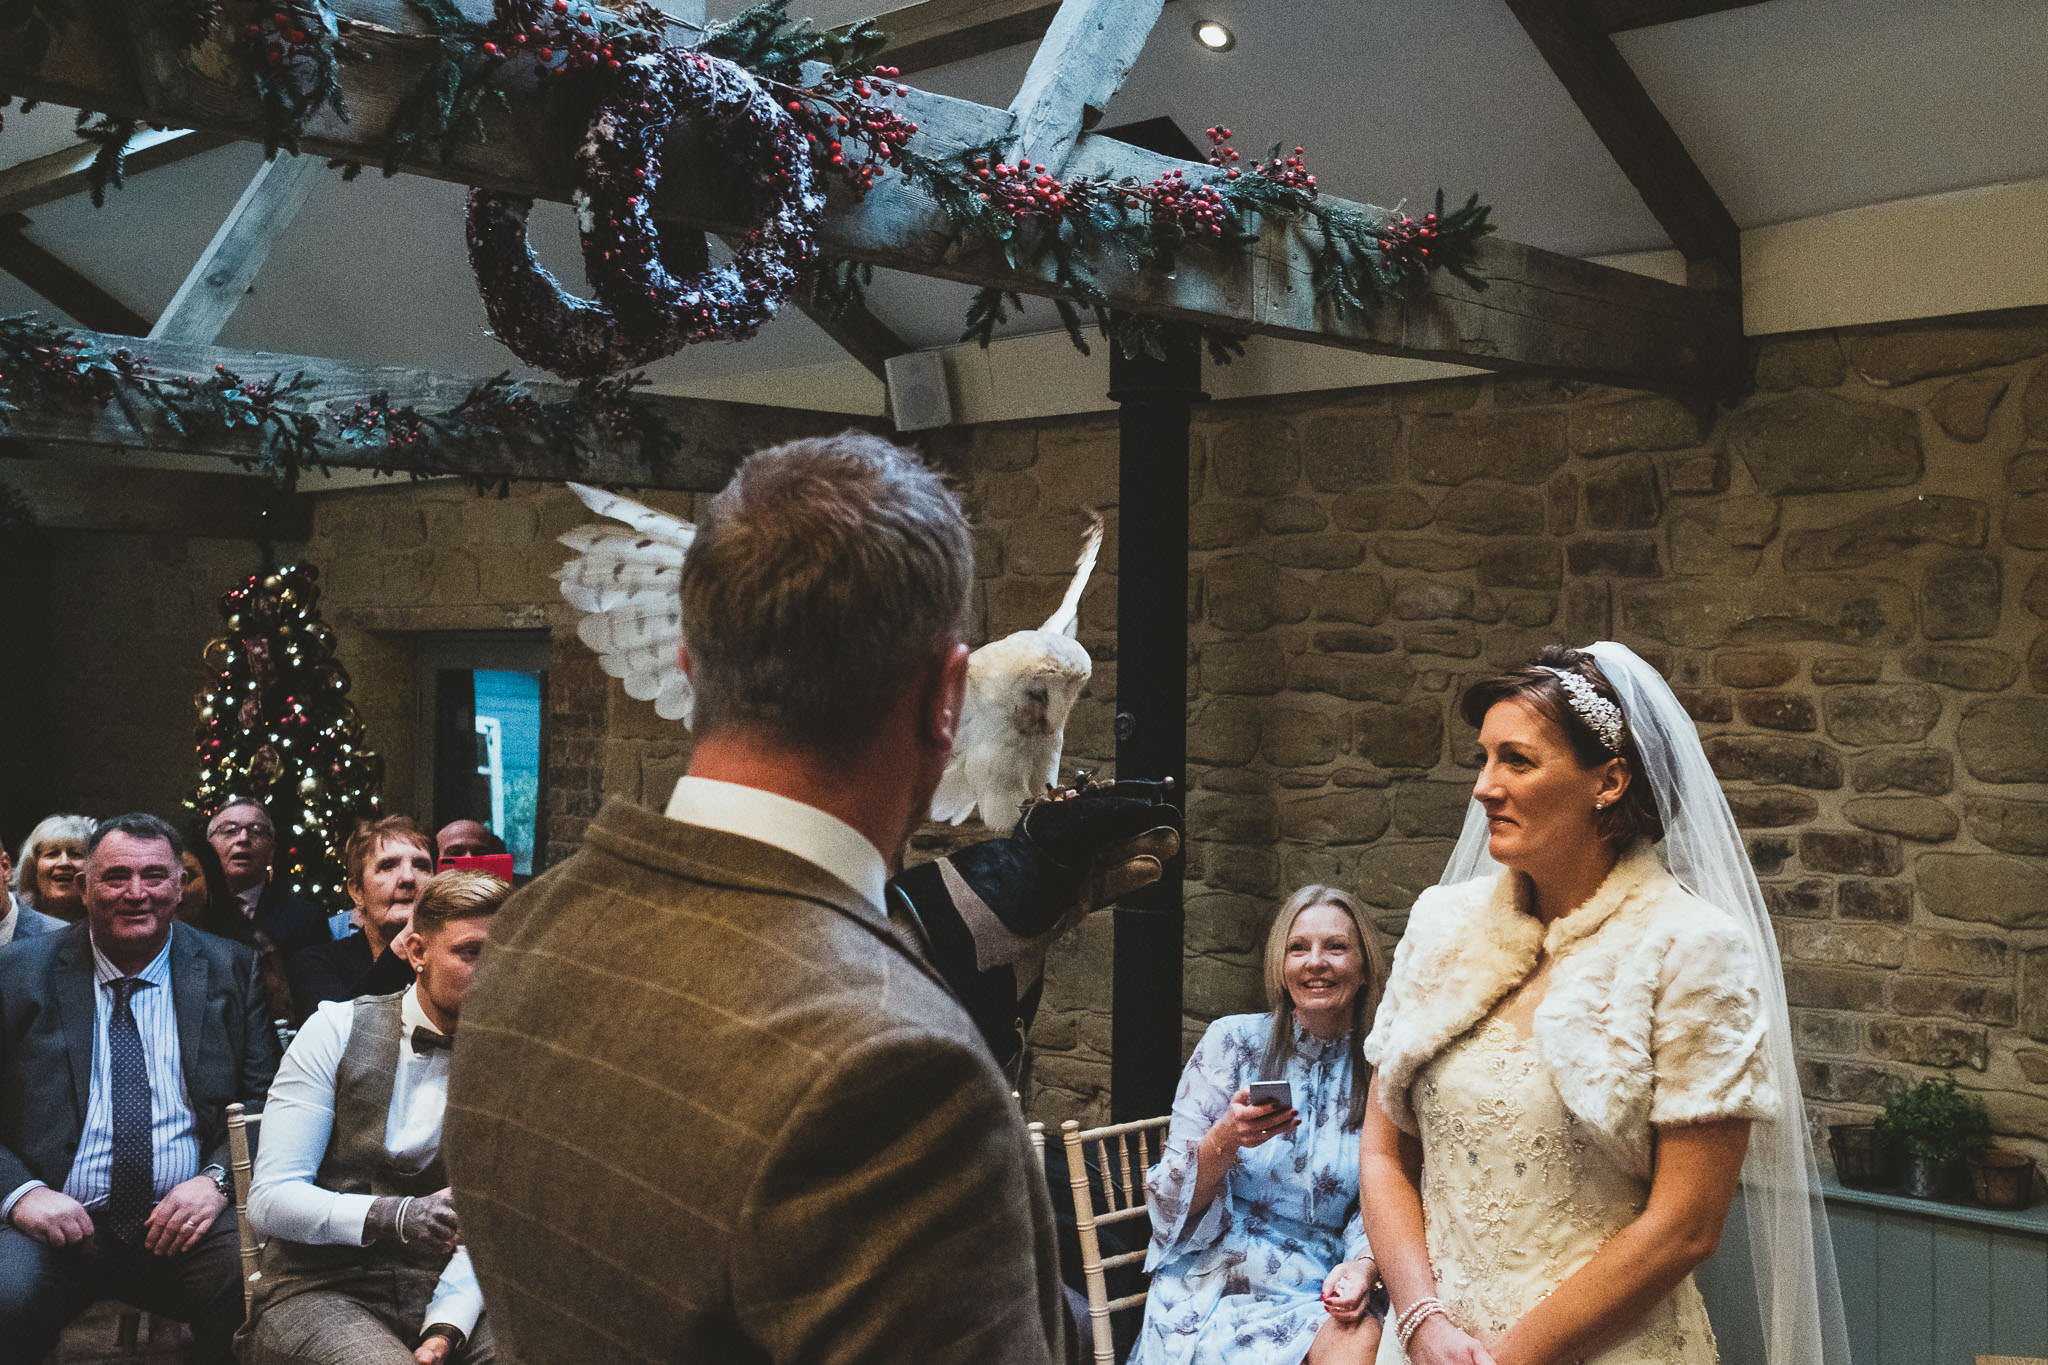 Owl lands on groom's arm during wedding ceremony